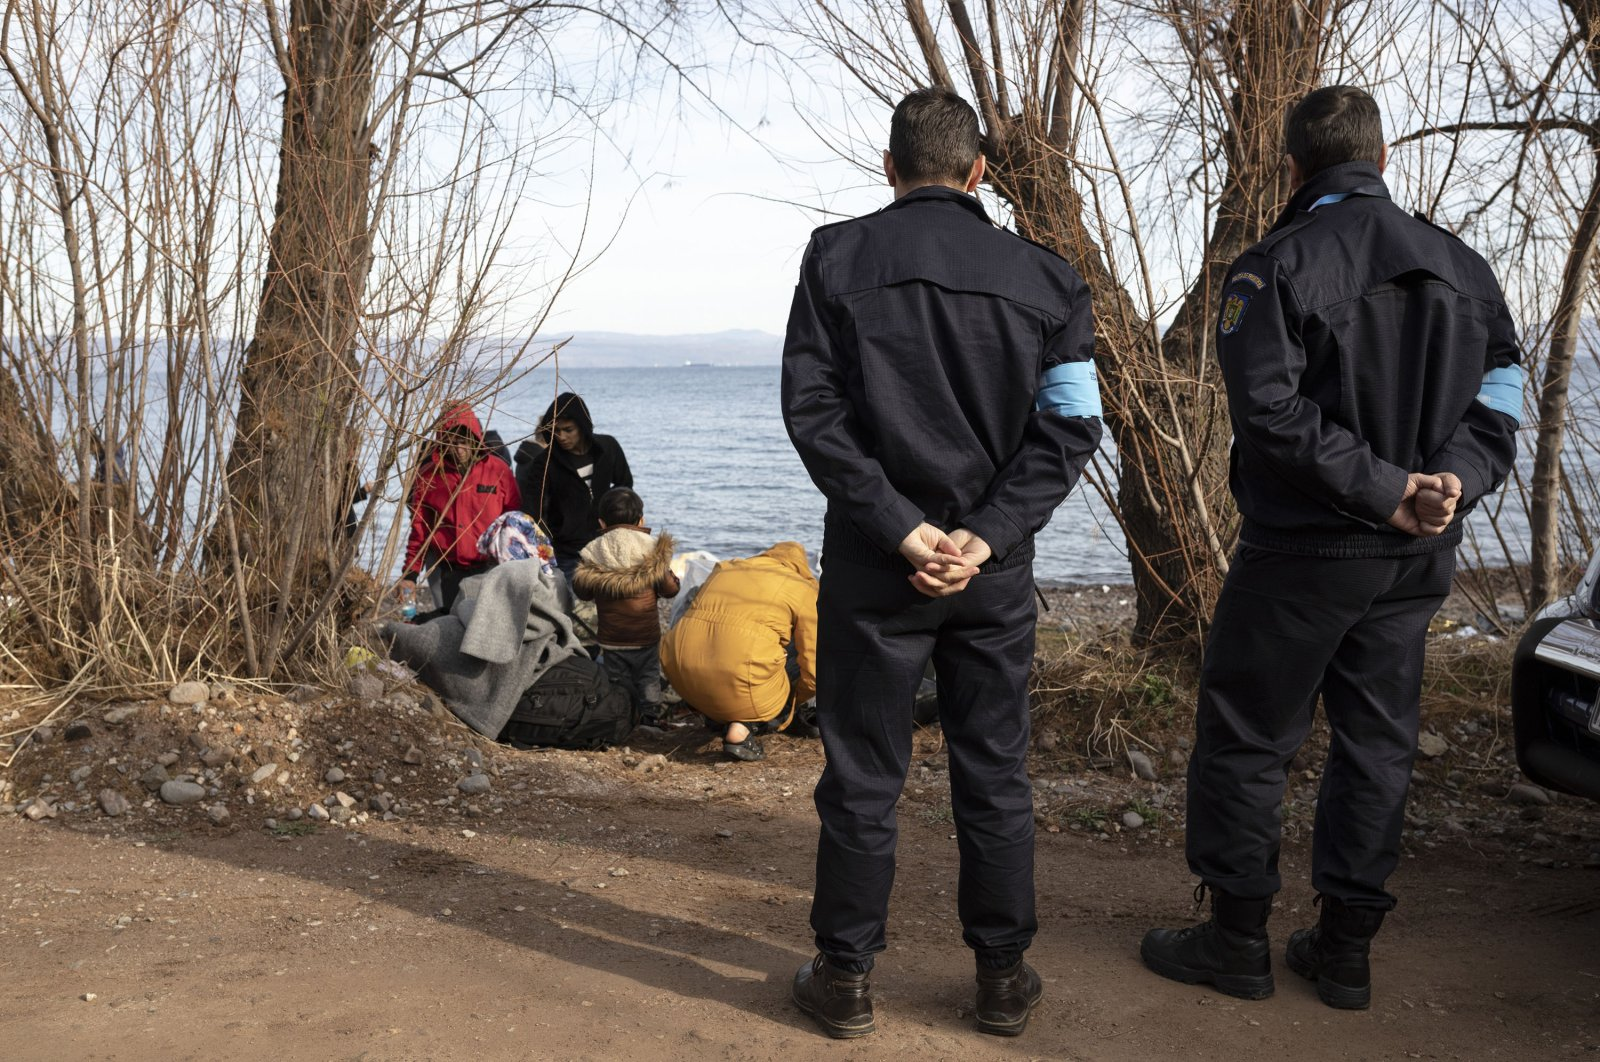 Frontex border officers stand by migrants from Afghanistan on the shore near the village of Skala Sikamineas on the island of Lesbos, Greece, March 1, 2020. (Photo by Getty Images)